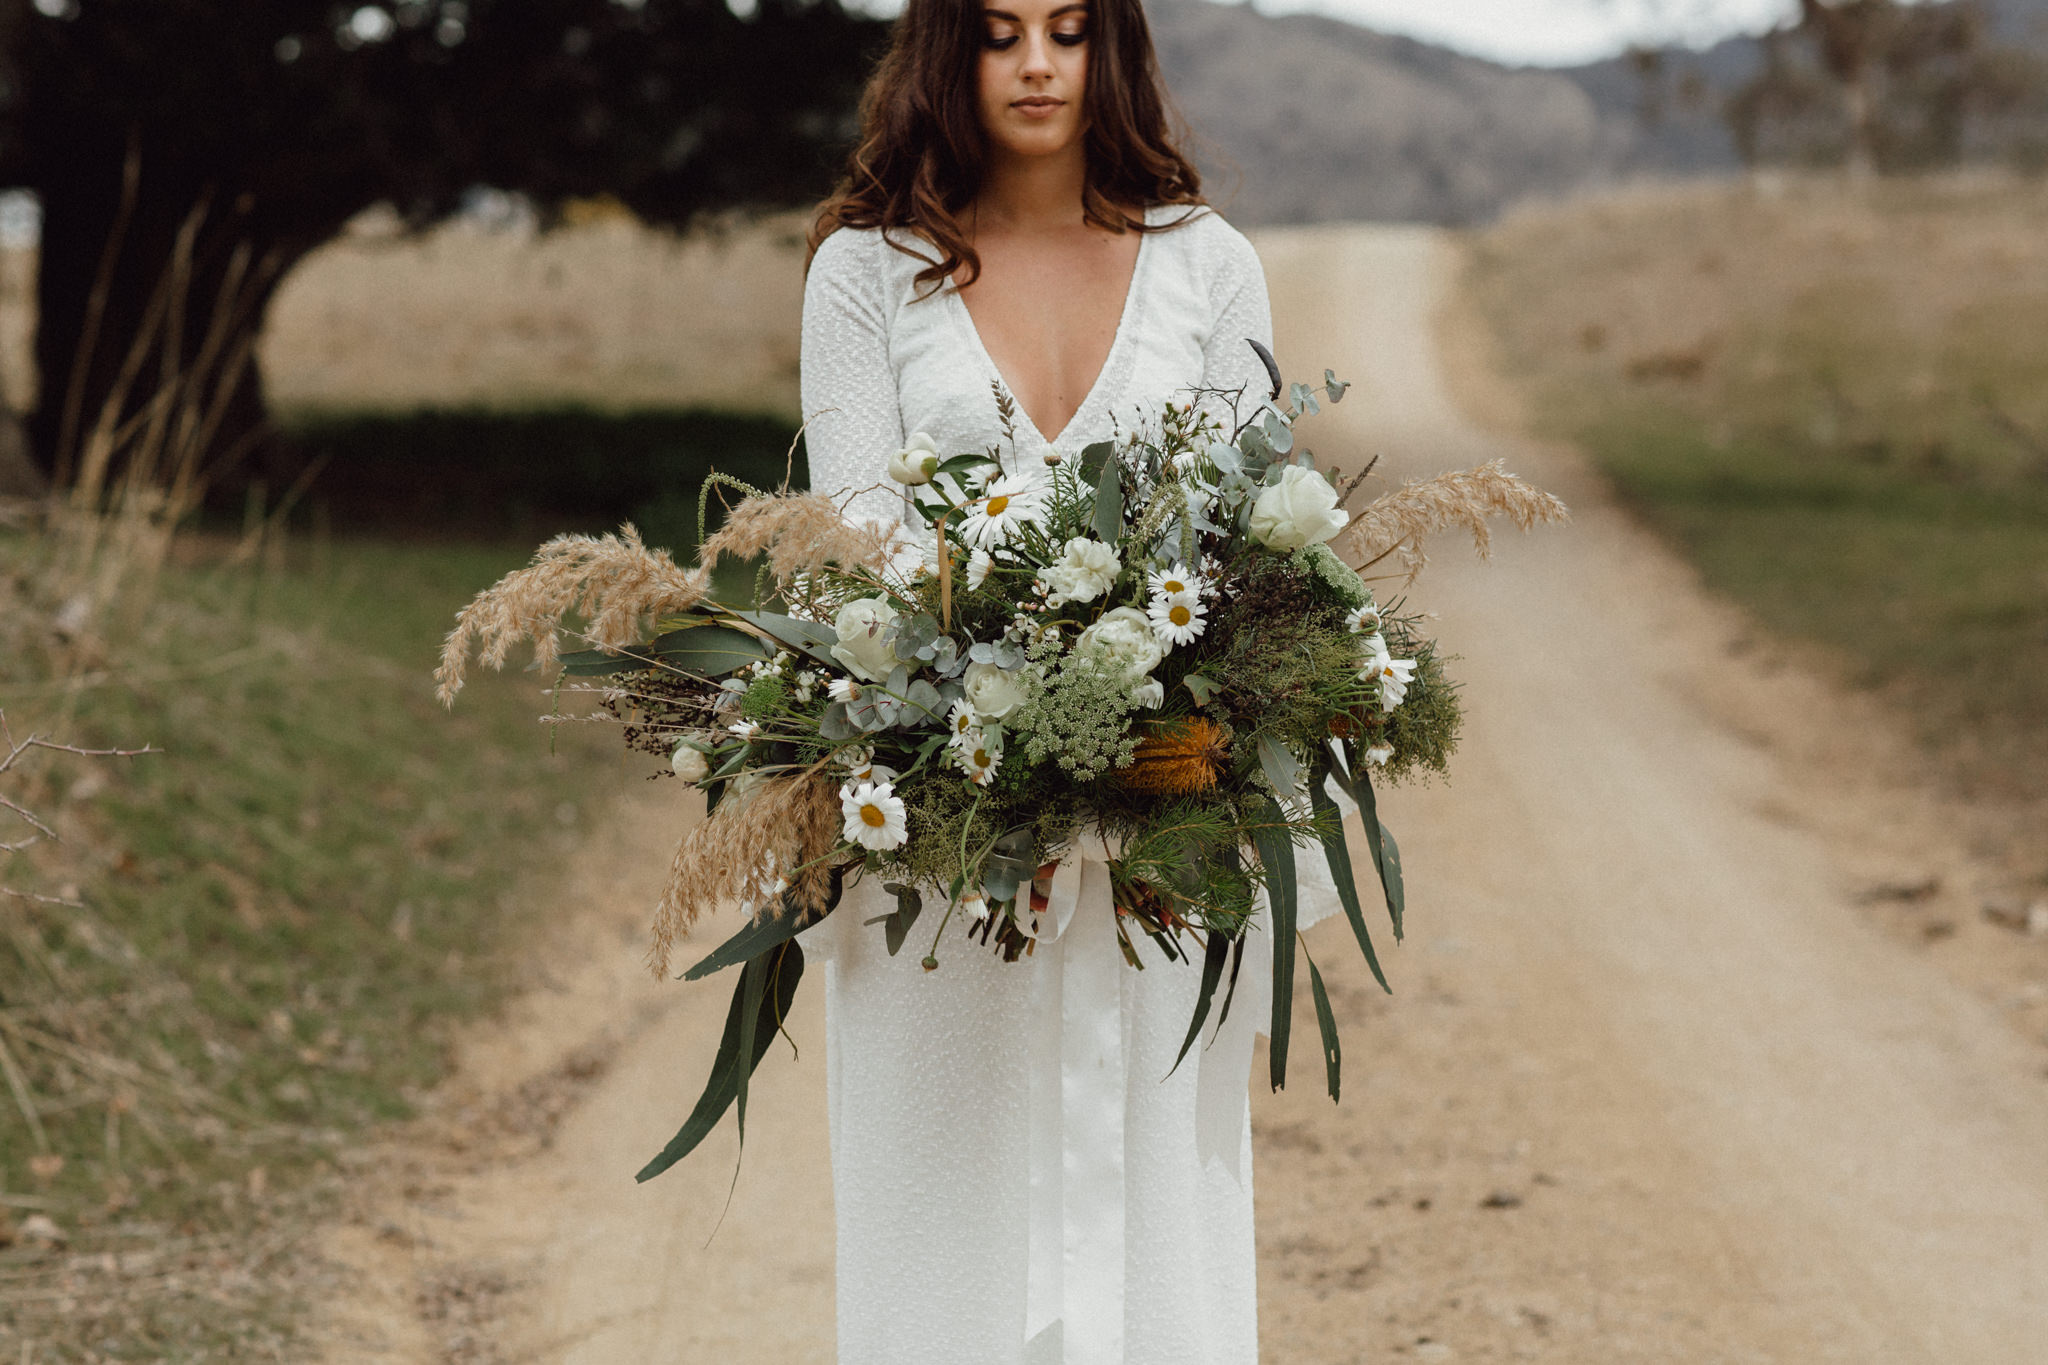 Bowral Wedding Photographer, Lanyon Homestead, Unveiled magazine, country wedding inspiration, boho wedding, Shae Estella Photo, Canberra wedding photographer, grace loves lace, spell bride, southern highlands wedding